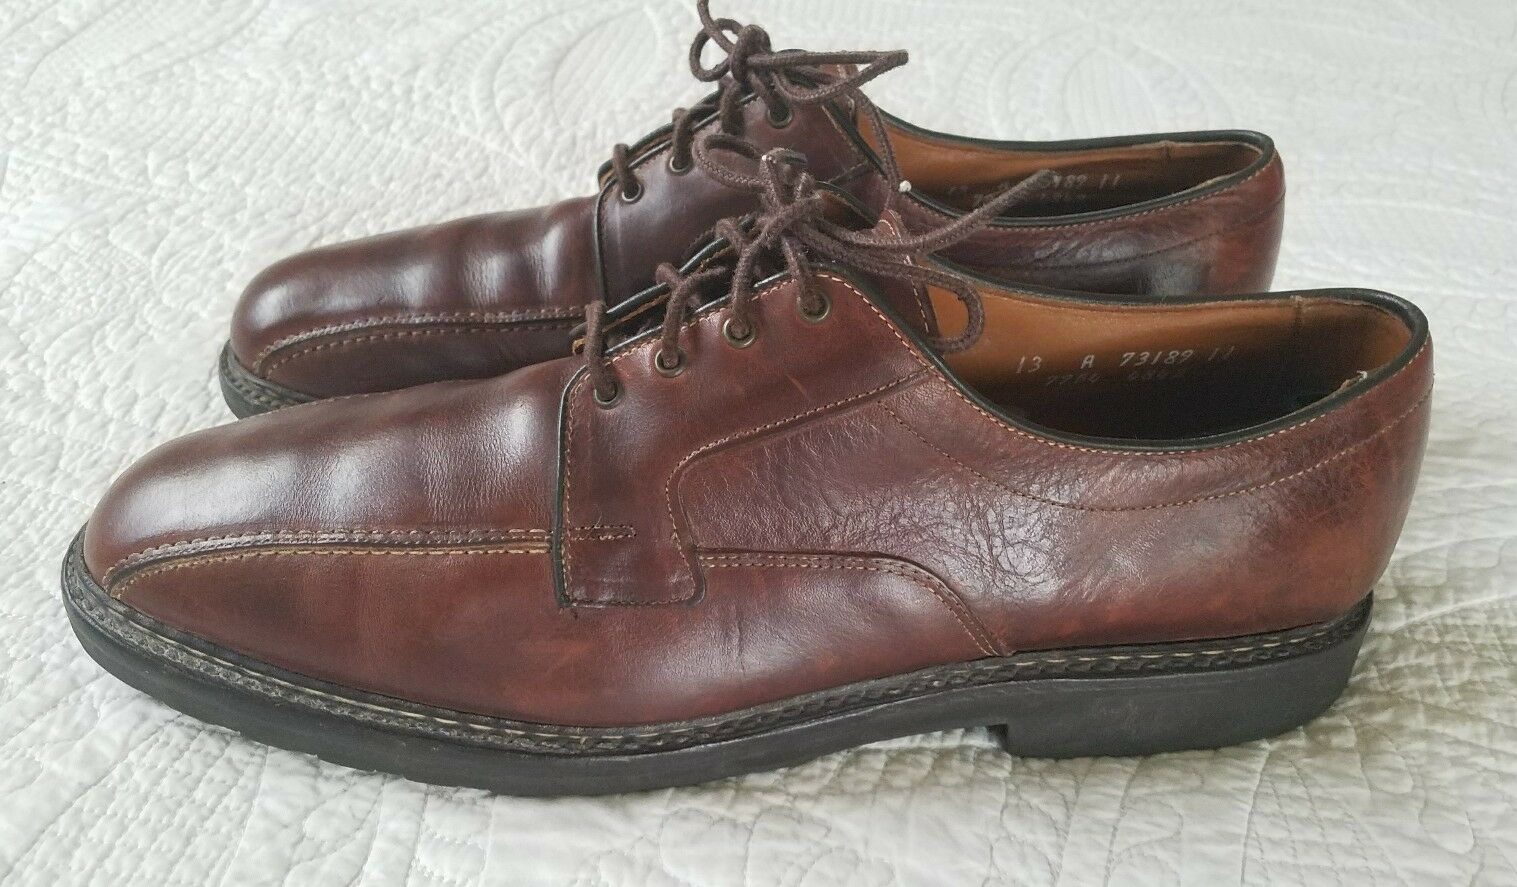 ALLEN EDMONDS Mapleton Leather Oxford Dress shoes Men's Size 13 R